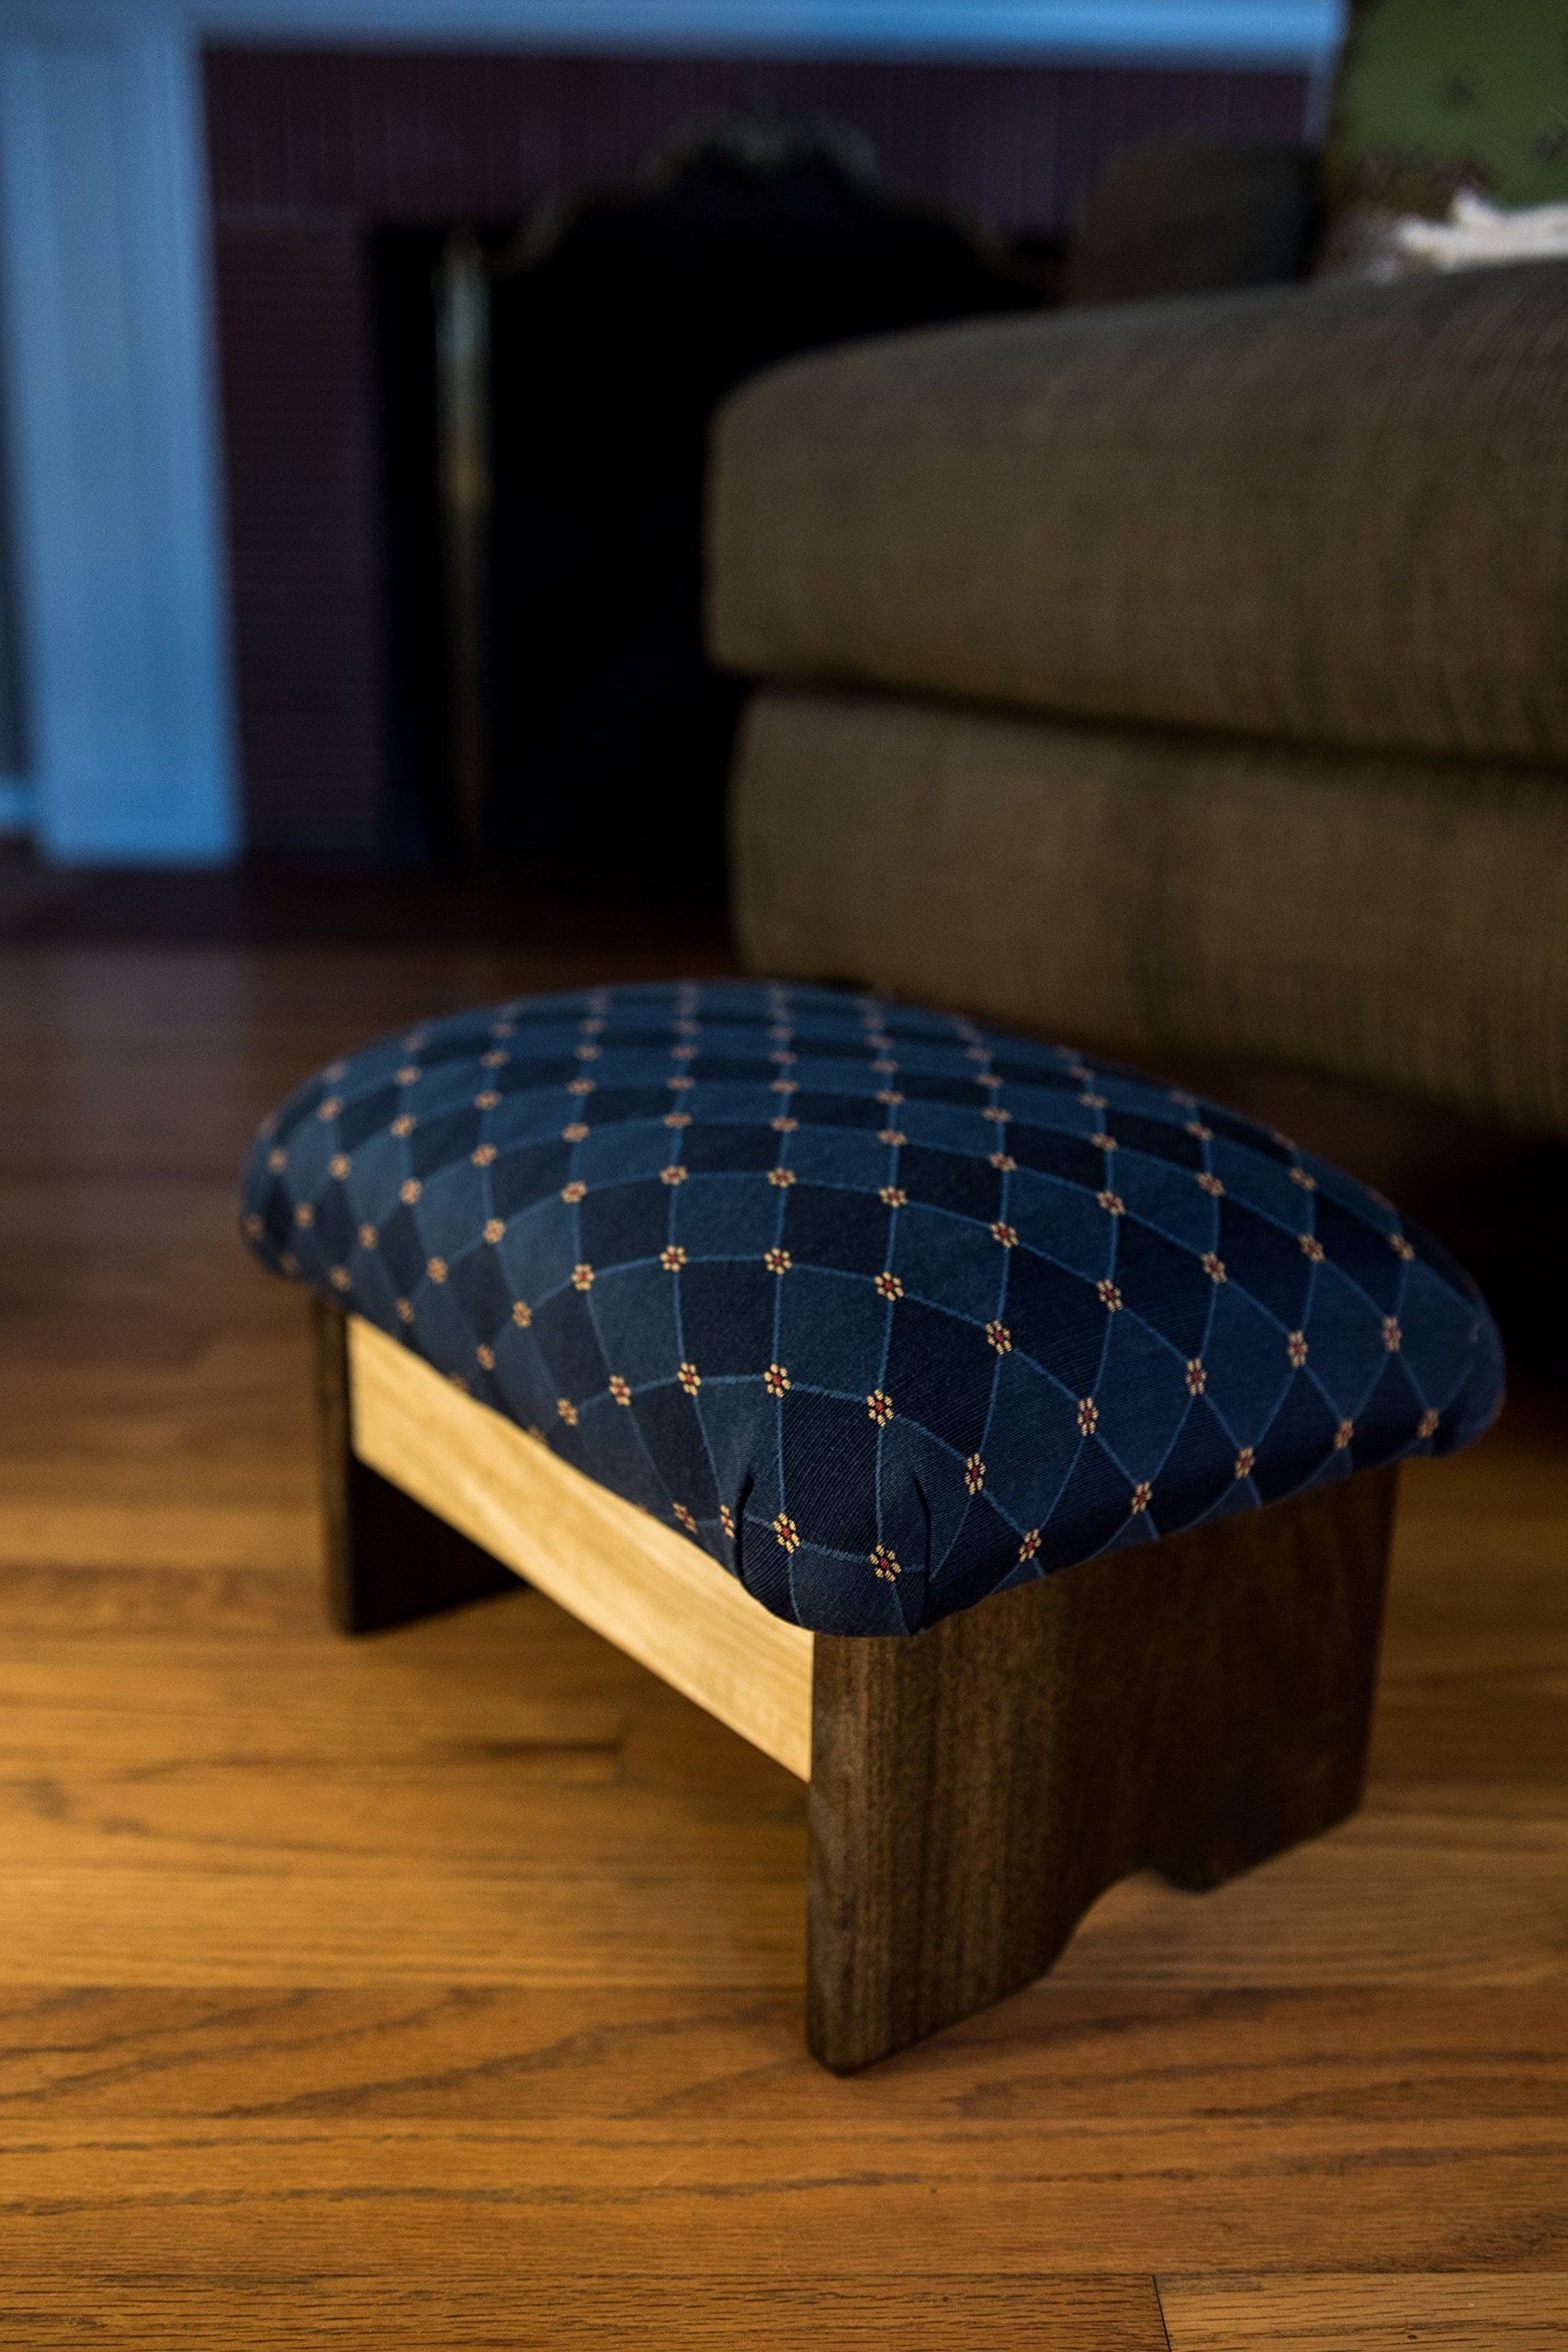 Padded Foot Stool 9'' Luxury Fabrics (Made in the USA) (Rhapsody In Blue - Chic Stain)